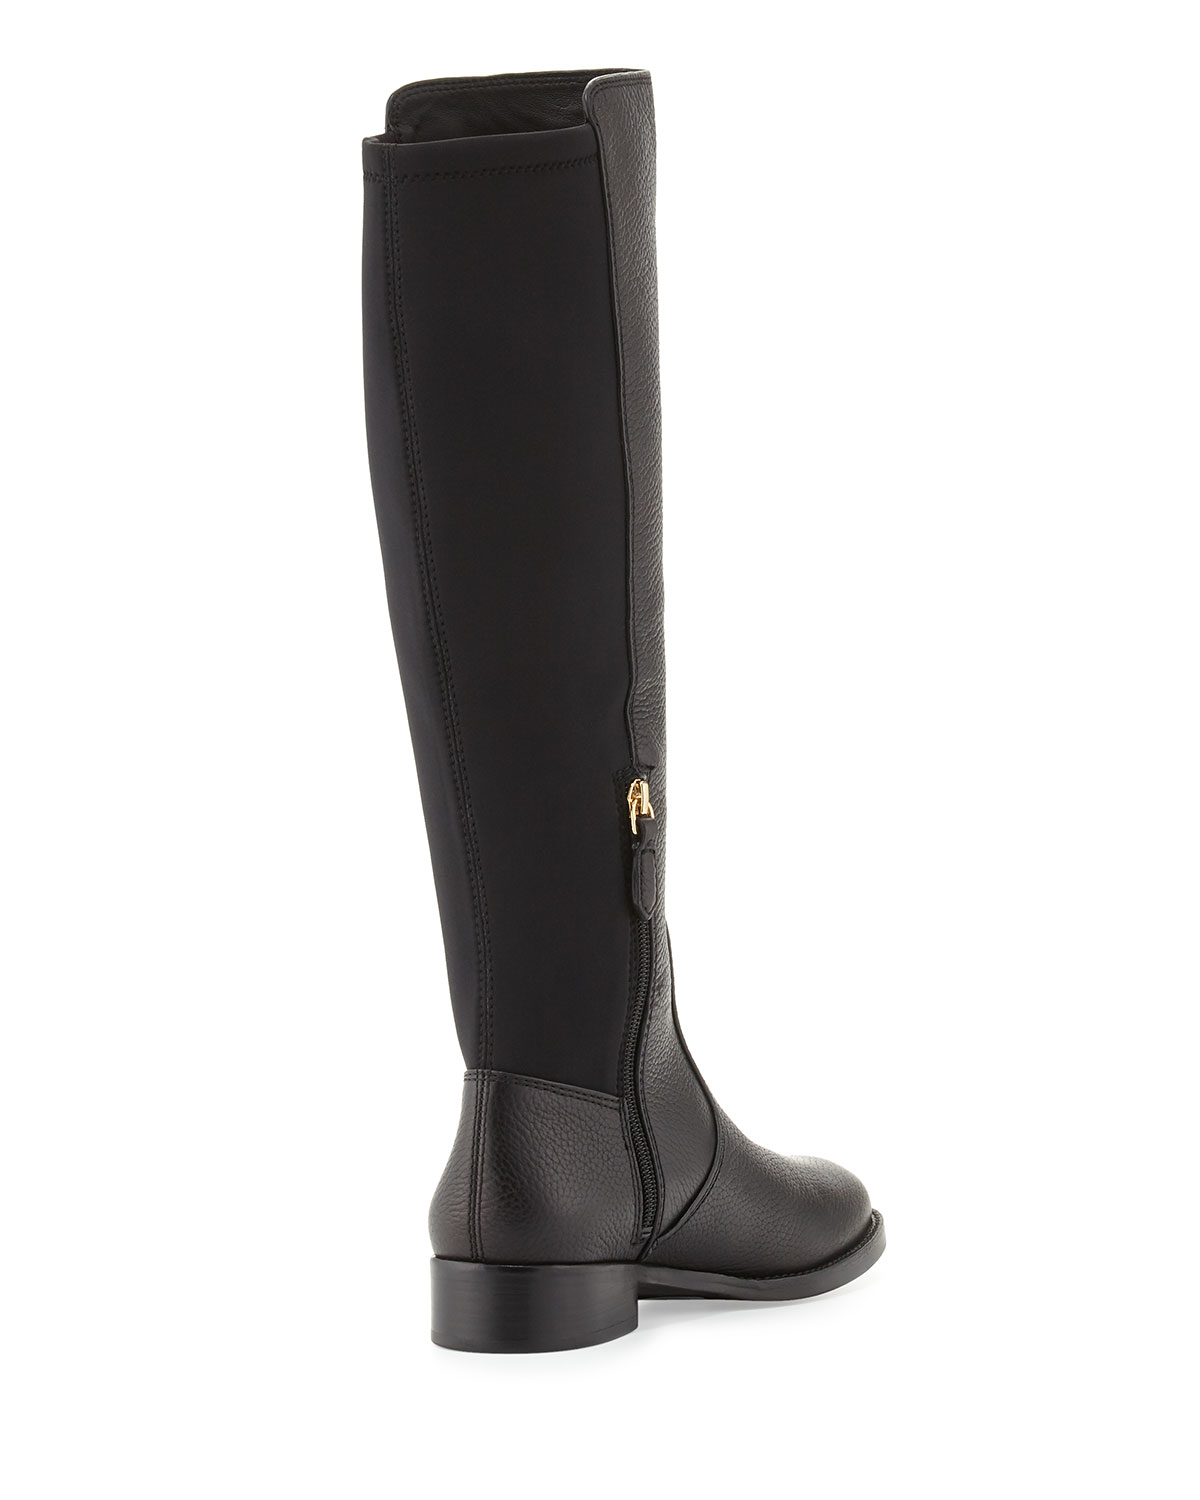 de8cdd1274f2 ... sweden lyst tory burch selden pebbled leather riding boots in black  76ff2 8051c